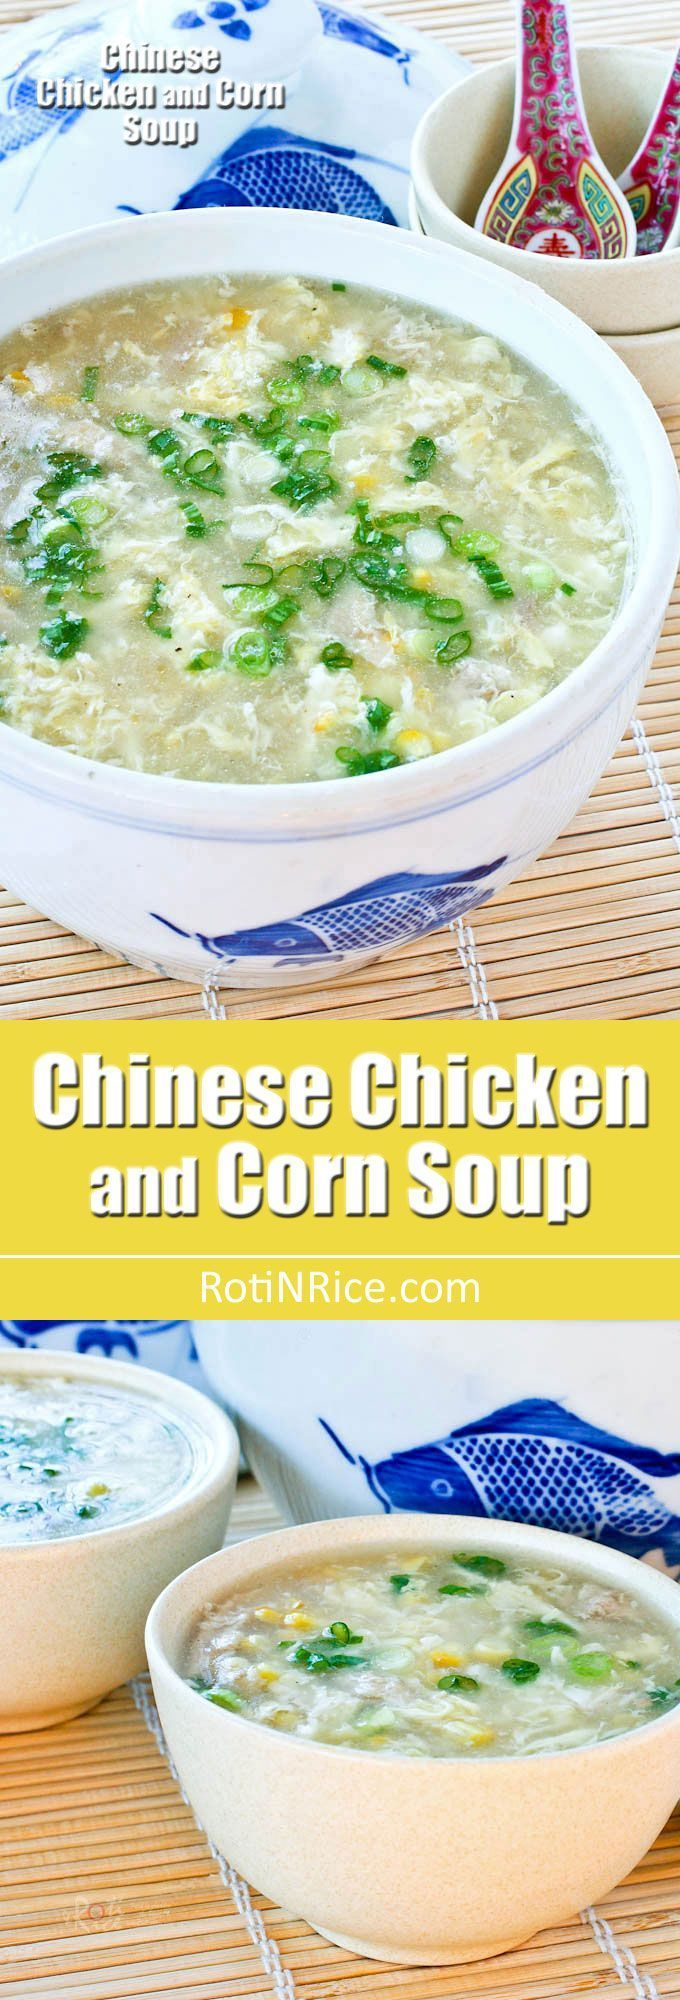 Shredded chicken meat, crunchy corn kernels, and chicken broth make up this easy Chinese Chicken and Corn Soup. A must try when…